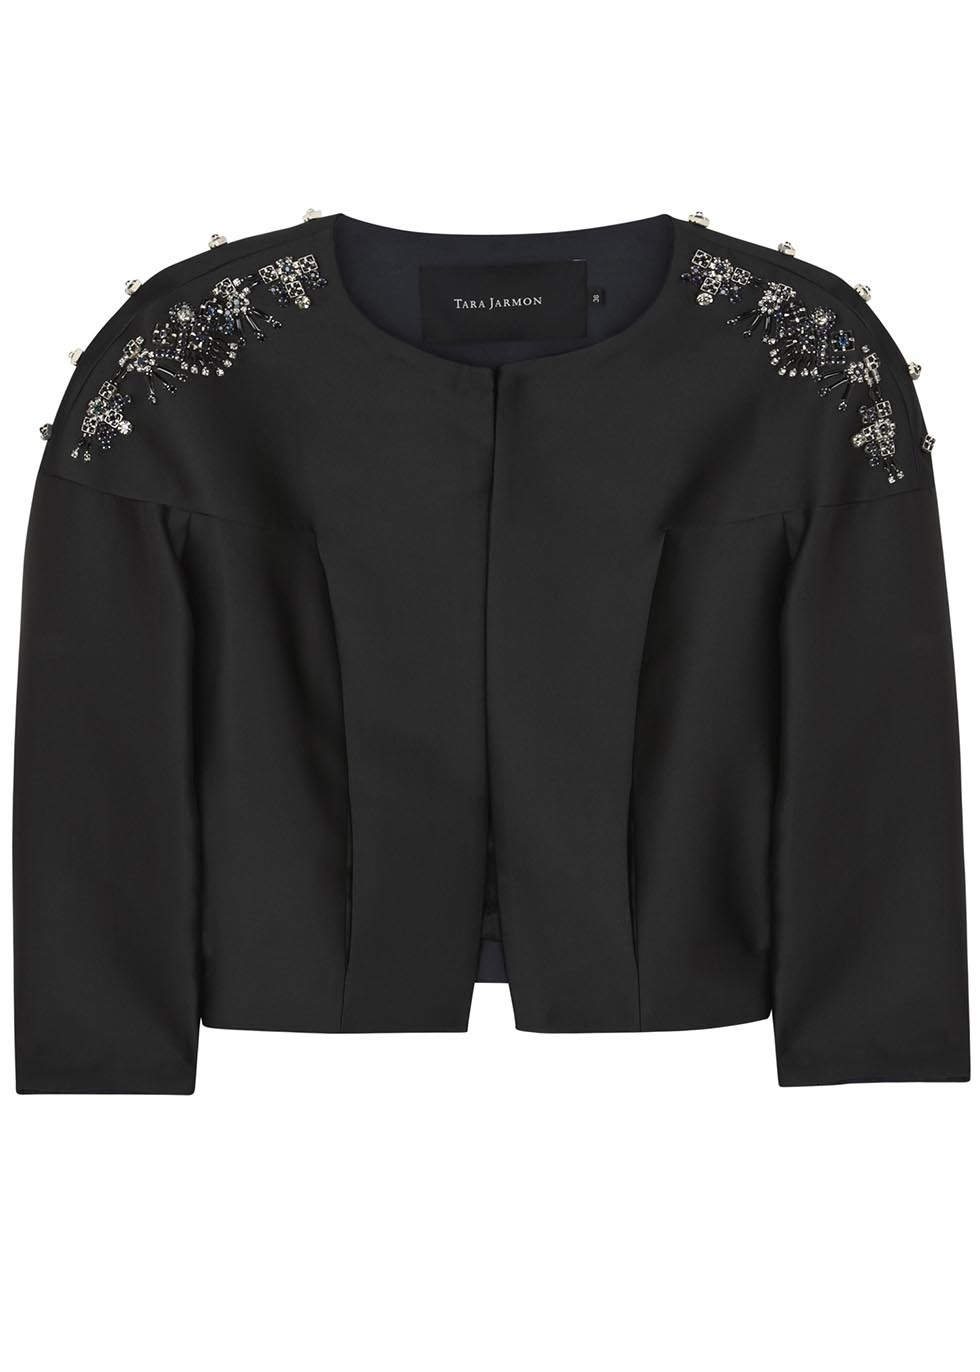 Black Embellished Satin Twill Jacket Size - pattern: plain; collar: round collar/collarless; style: boxy; predominant colour: black; occasions: evening, occasion; fit: straight cut (boxy); fibres: polyester/polyamide - mix; sleeve length: 3/4 length; sleeve style: standard; texture group: structured shiny - satin/tafetta/silk etc.; collar break: high; pattern type: fabric; embellishment: beading; season: s/s 2014; length: cropped; wardrobe: event; embellishment location: shoulder